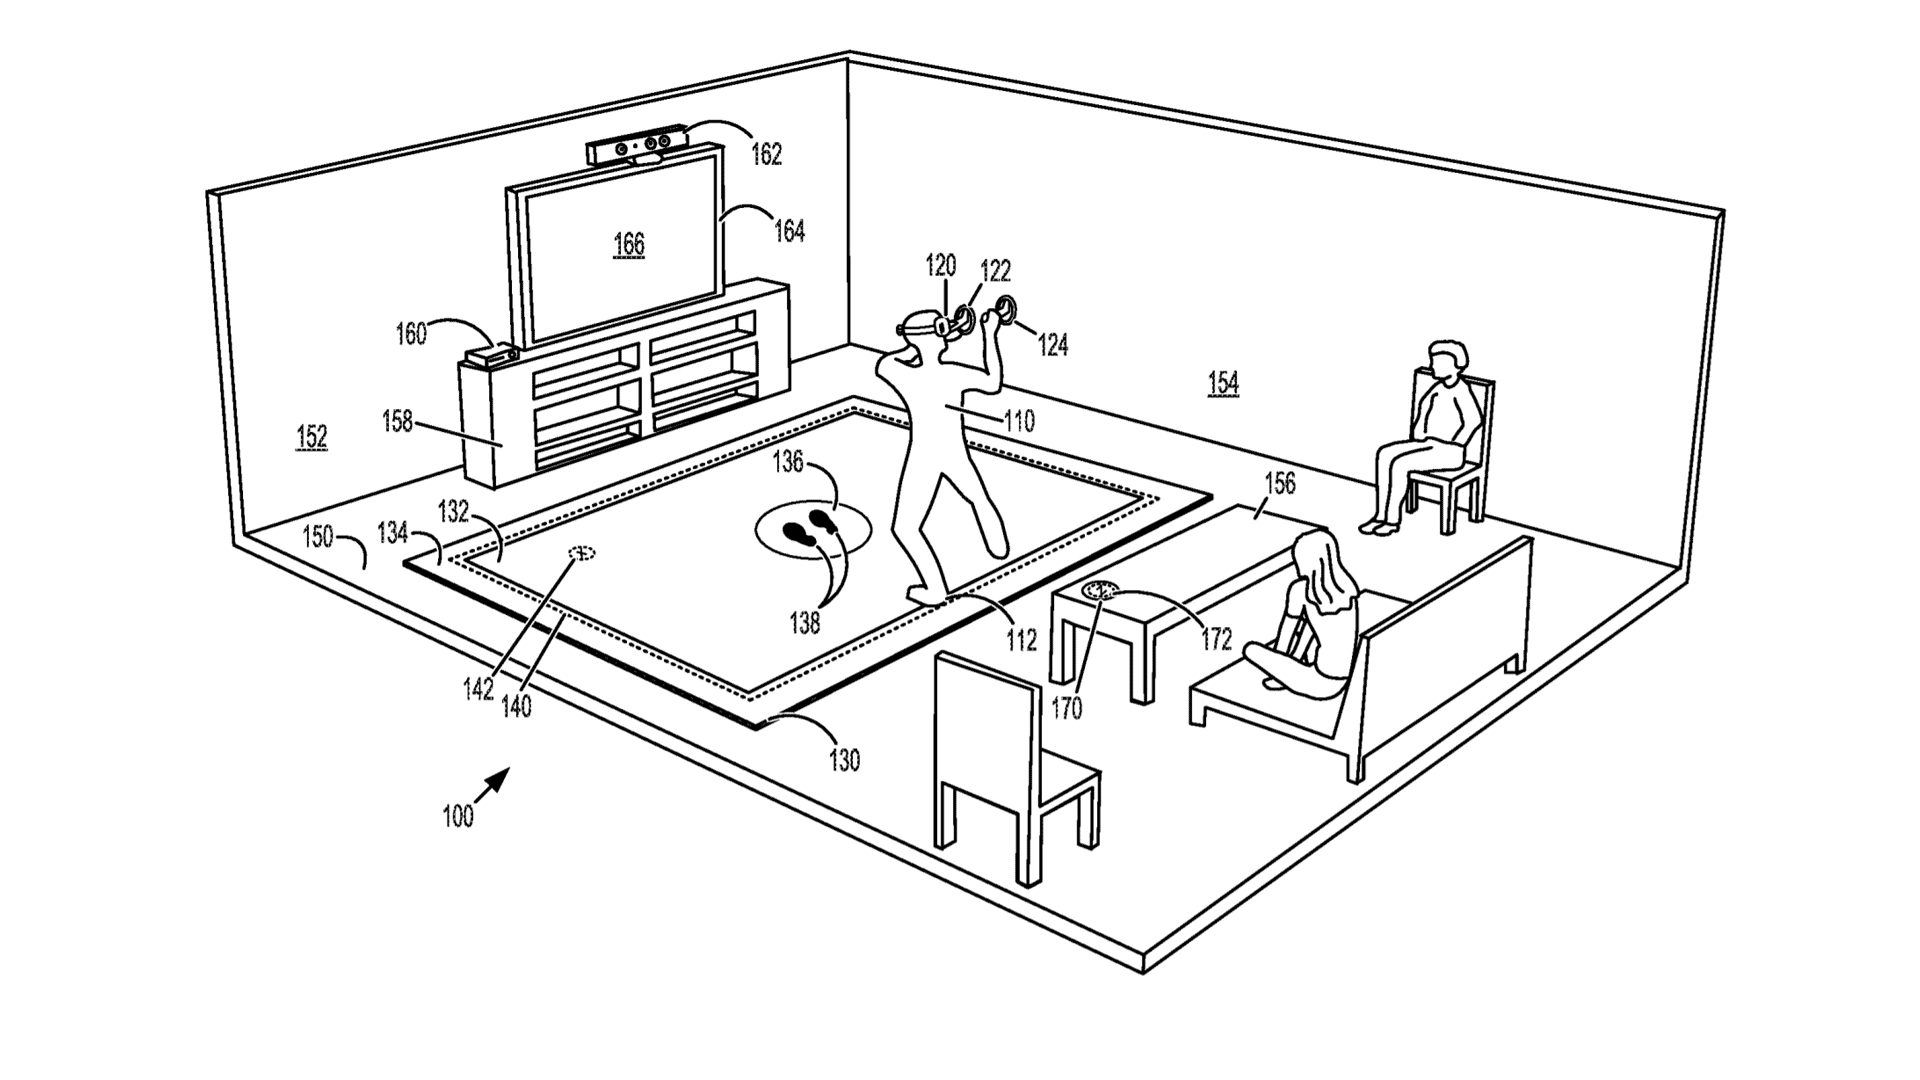 Microsoft Files Vr Floor Mat Patent Possibly Aimed At